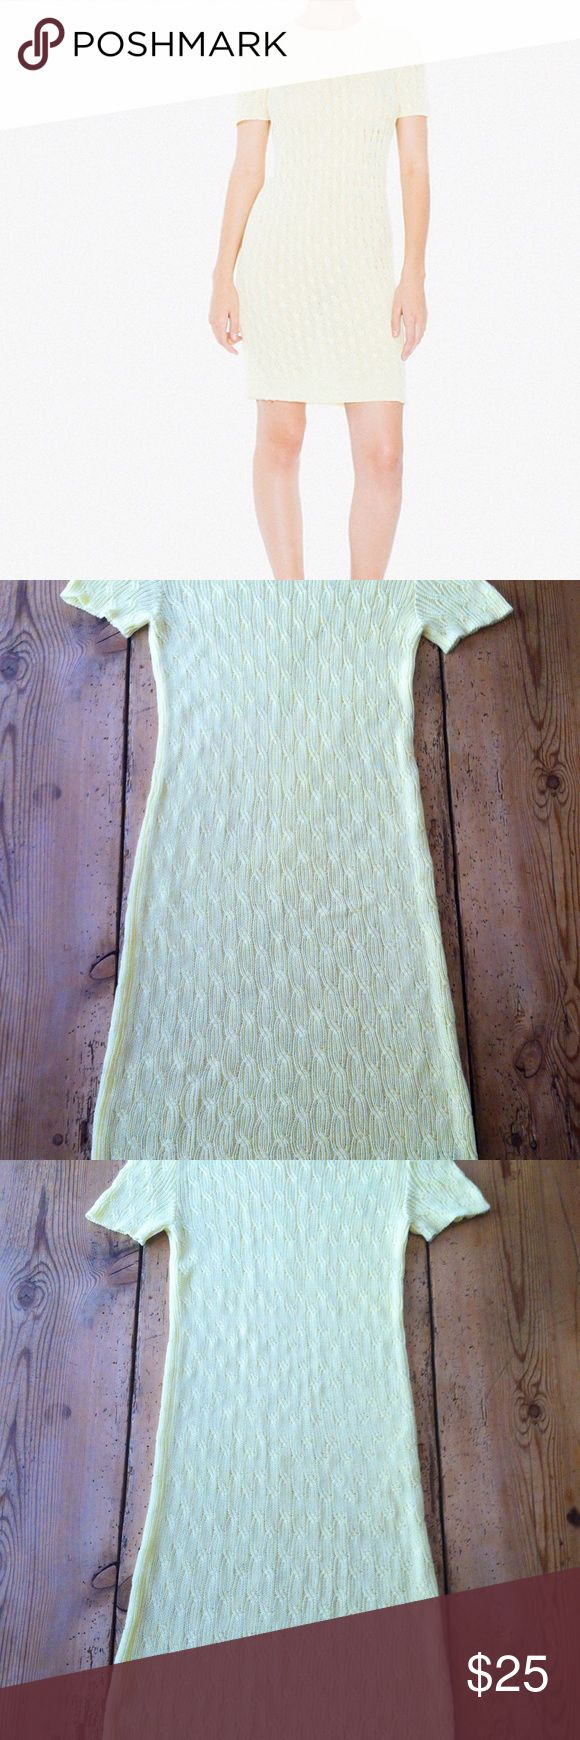 AMERICAN APPAREL Cable Knit Tennis Dress XS Very Cute. Comfy. Soft. Easy. American Apparel dress xs. Worn only a few times. LIKE NEW. No flaws, holes, tears, or stains. Great dress you can just slip into and go. Vintage feel. Pale Yellow. American Apparel Dresses Midi